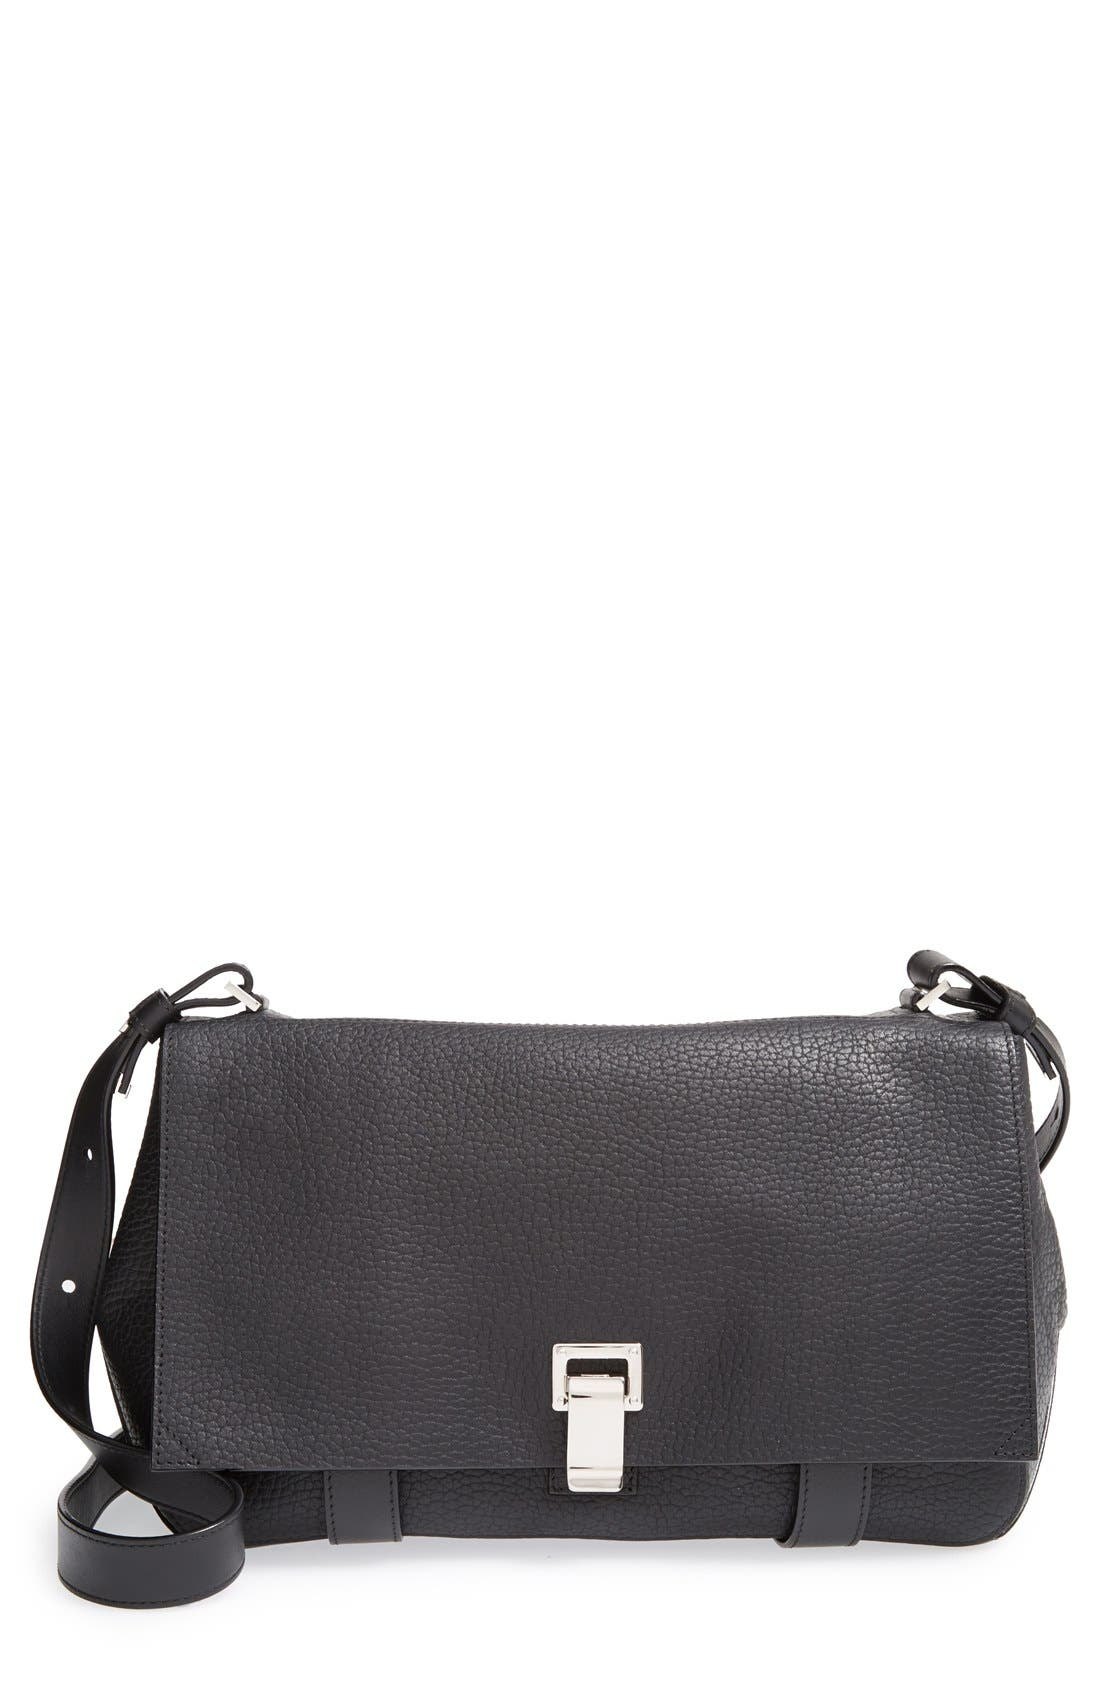 Alternate Image 1 Selected - Proenza Schouler 'Courier' Pebbled Leather Crossbody Bag